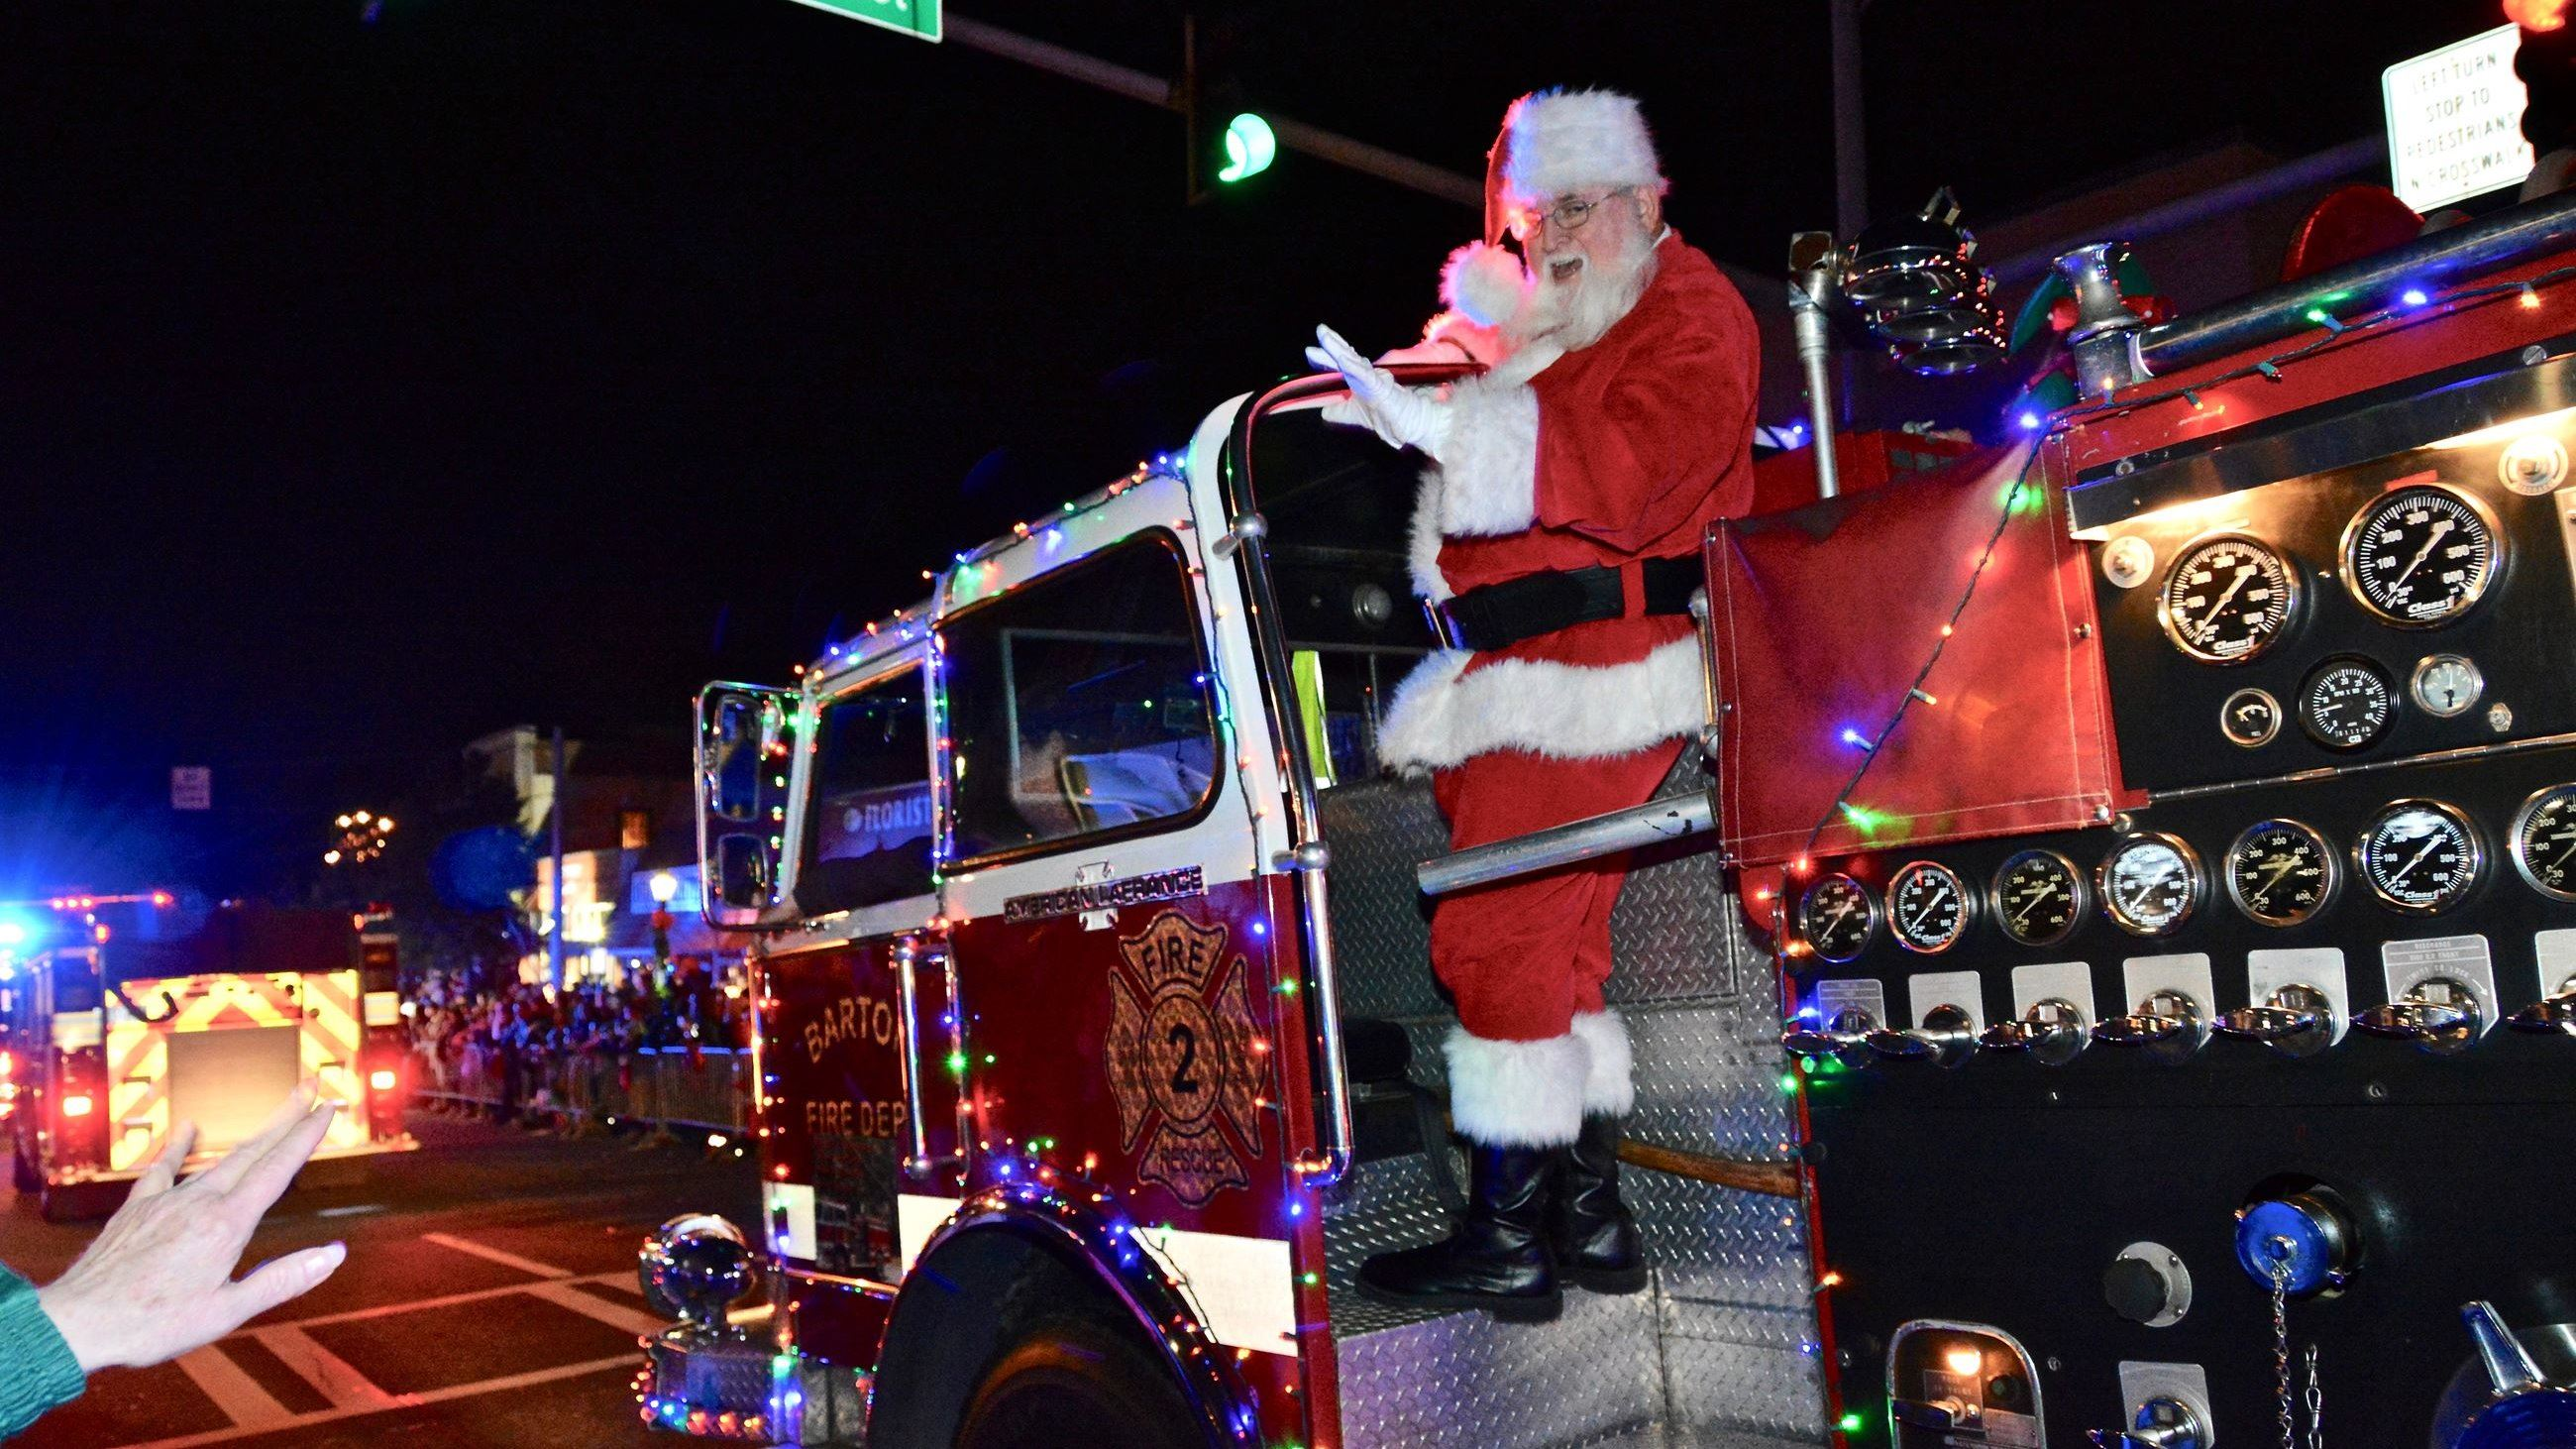 City Lawrenceville Open On Christmas Eve 2020 Lawrenceville reluctantly cancels Christmas parade